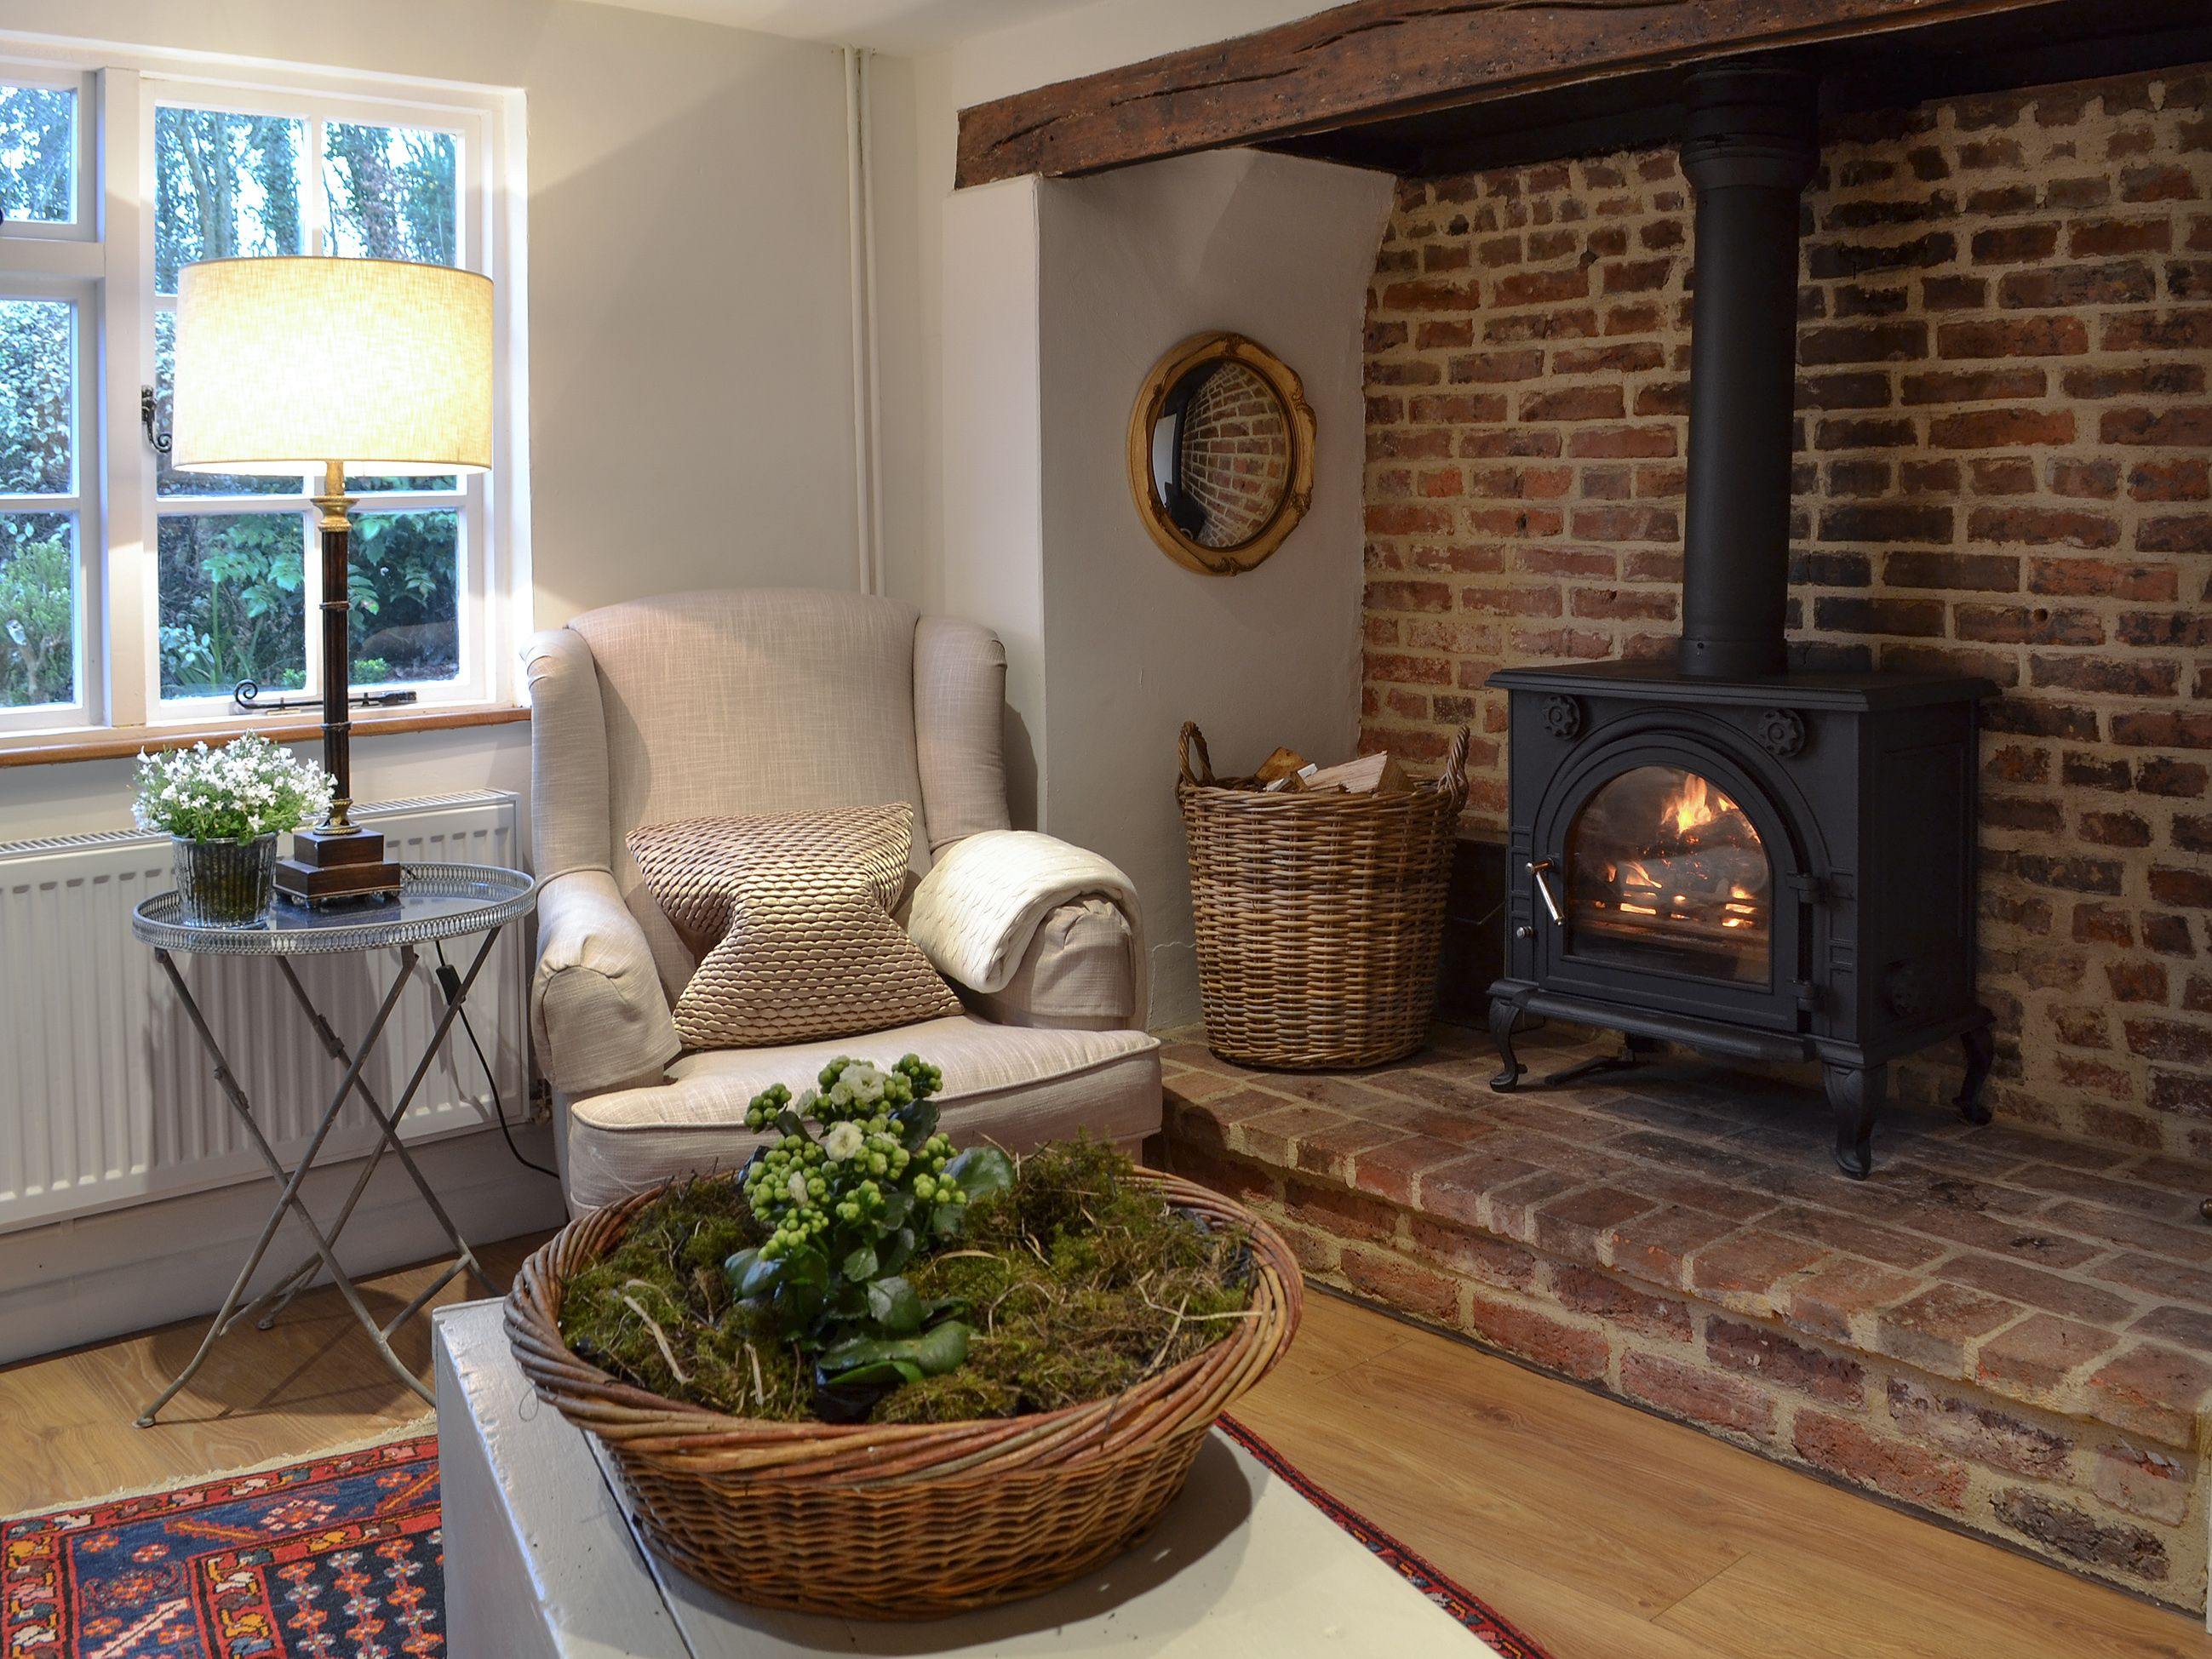 The Cottage Has A Welcoming Inglenook Fireplace Complete